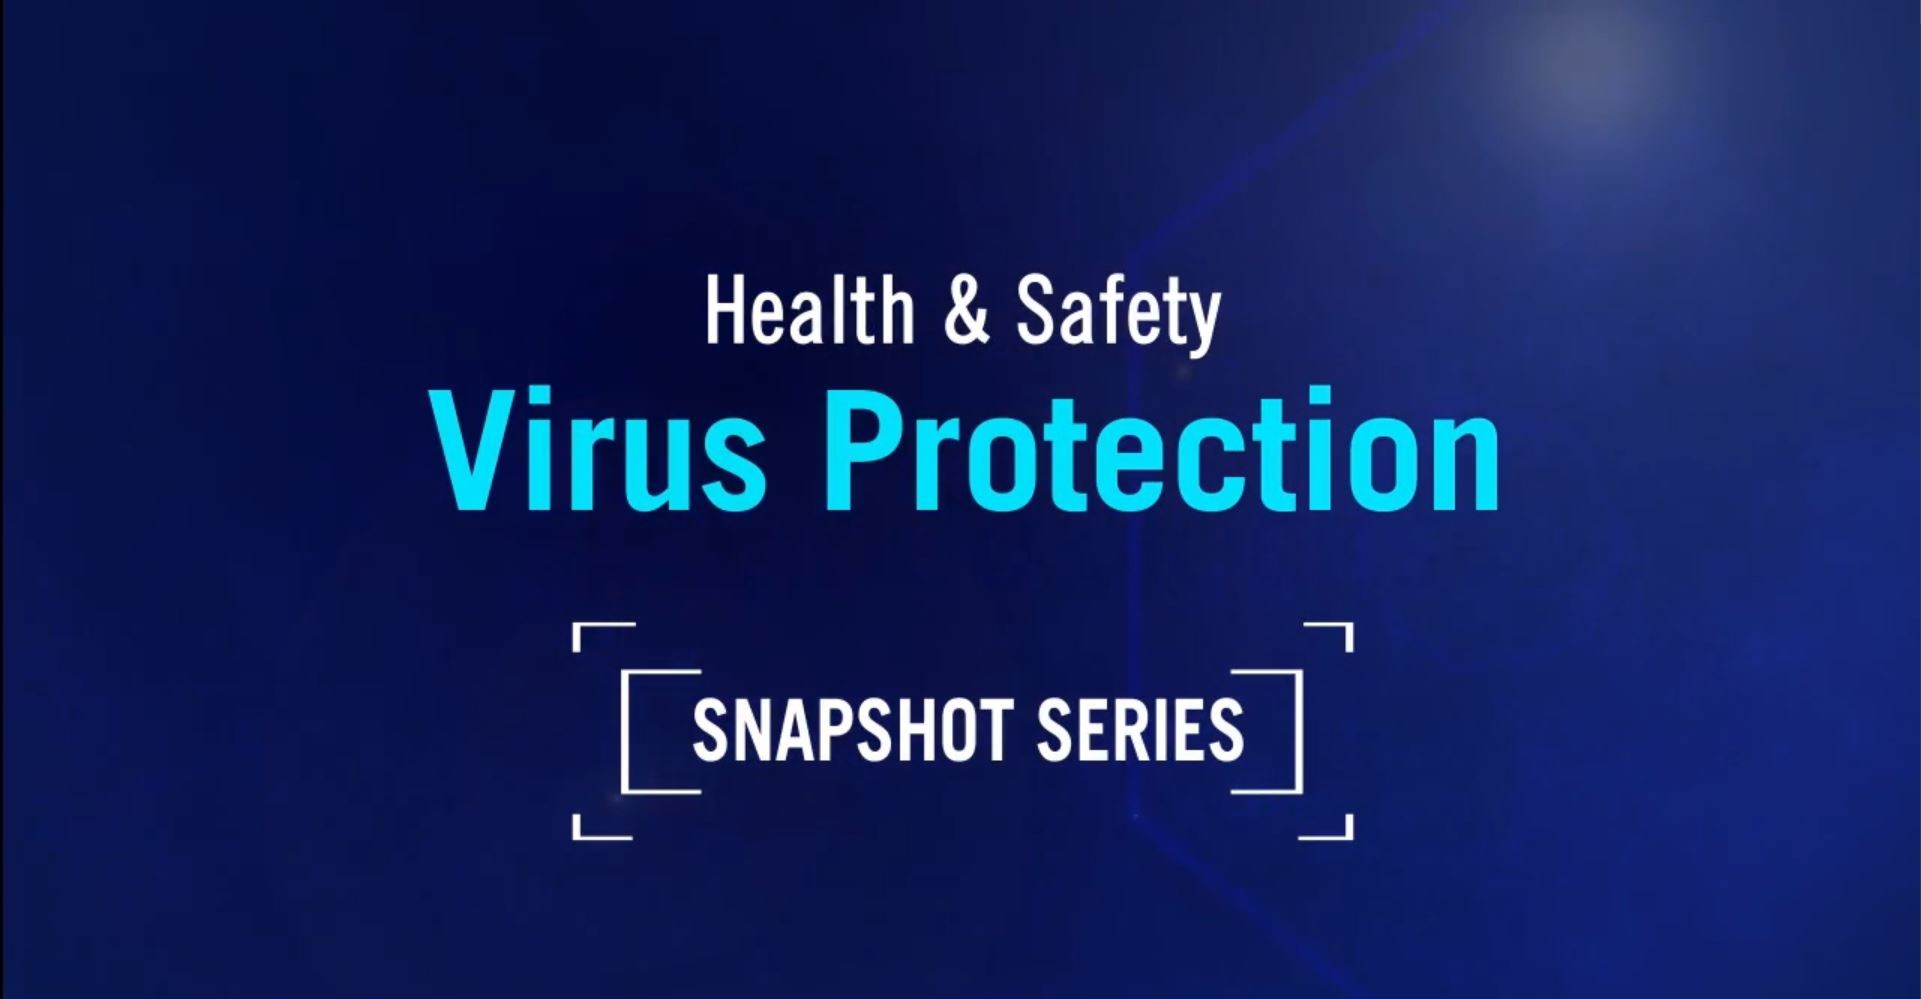 Free Virus Prevention Training Video